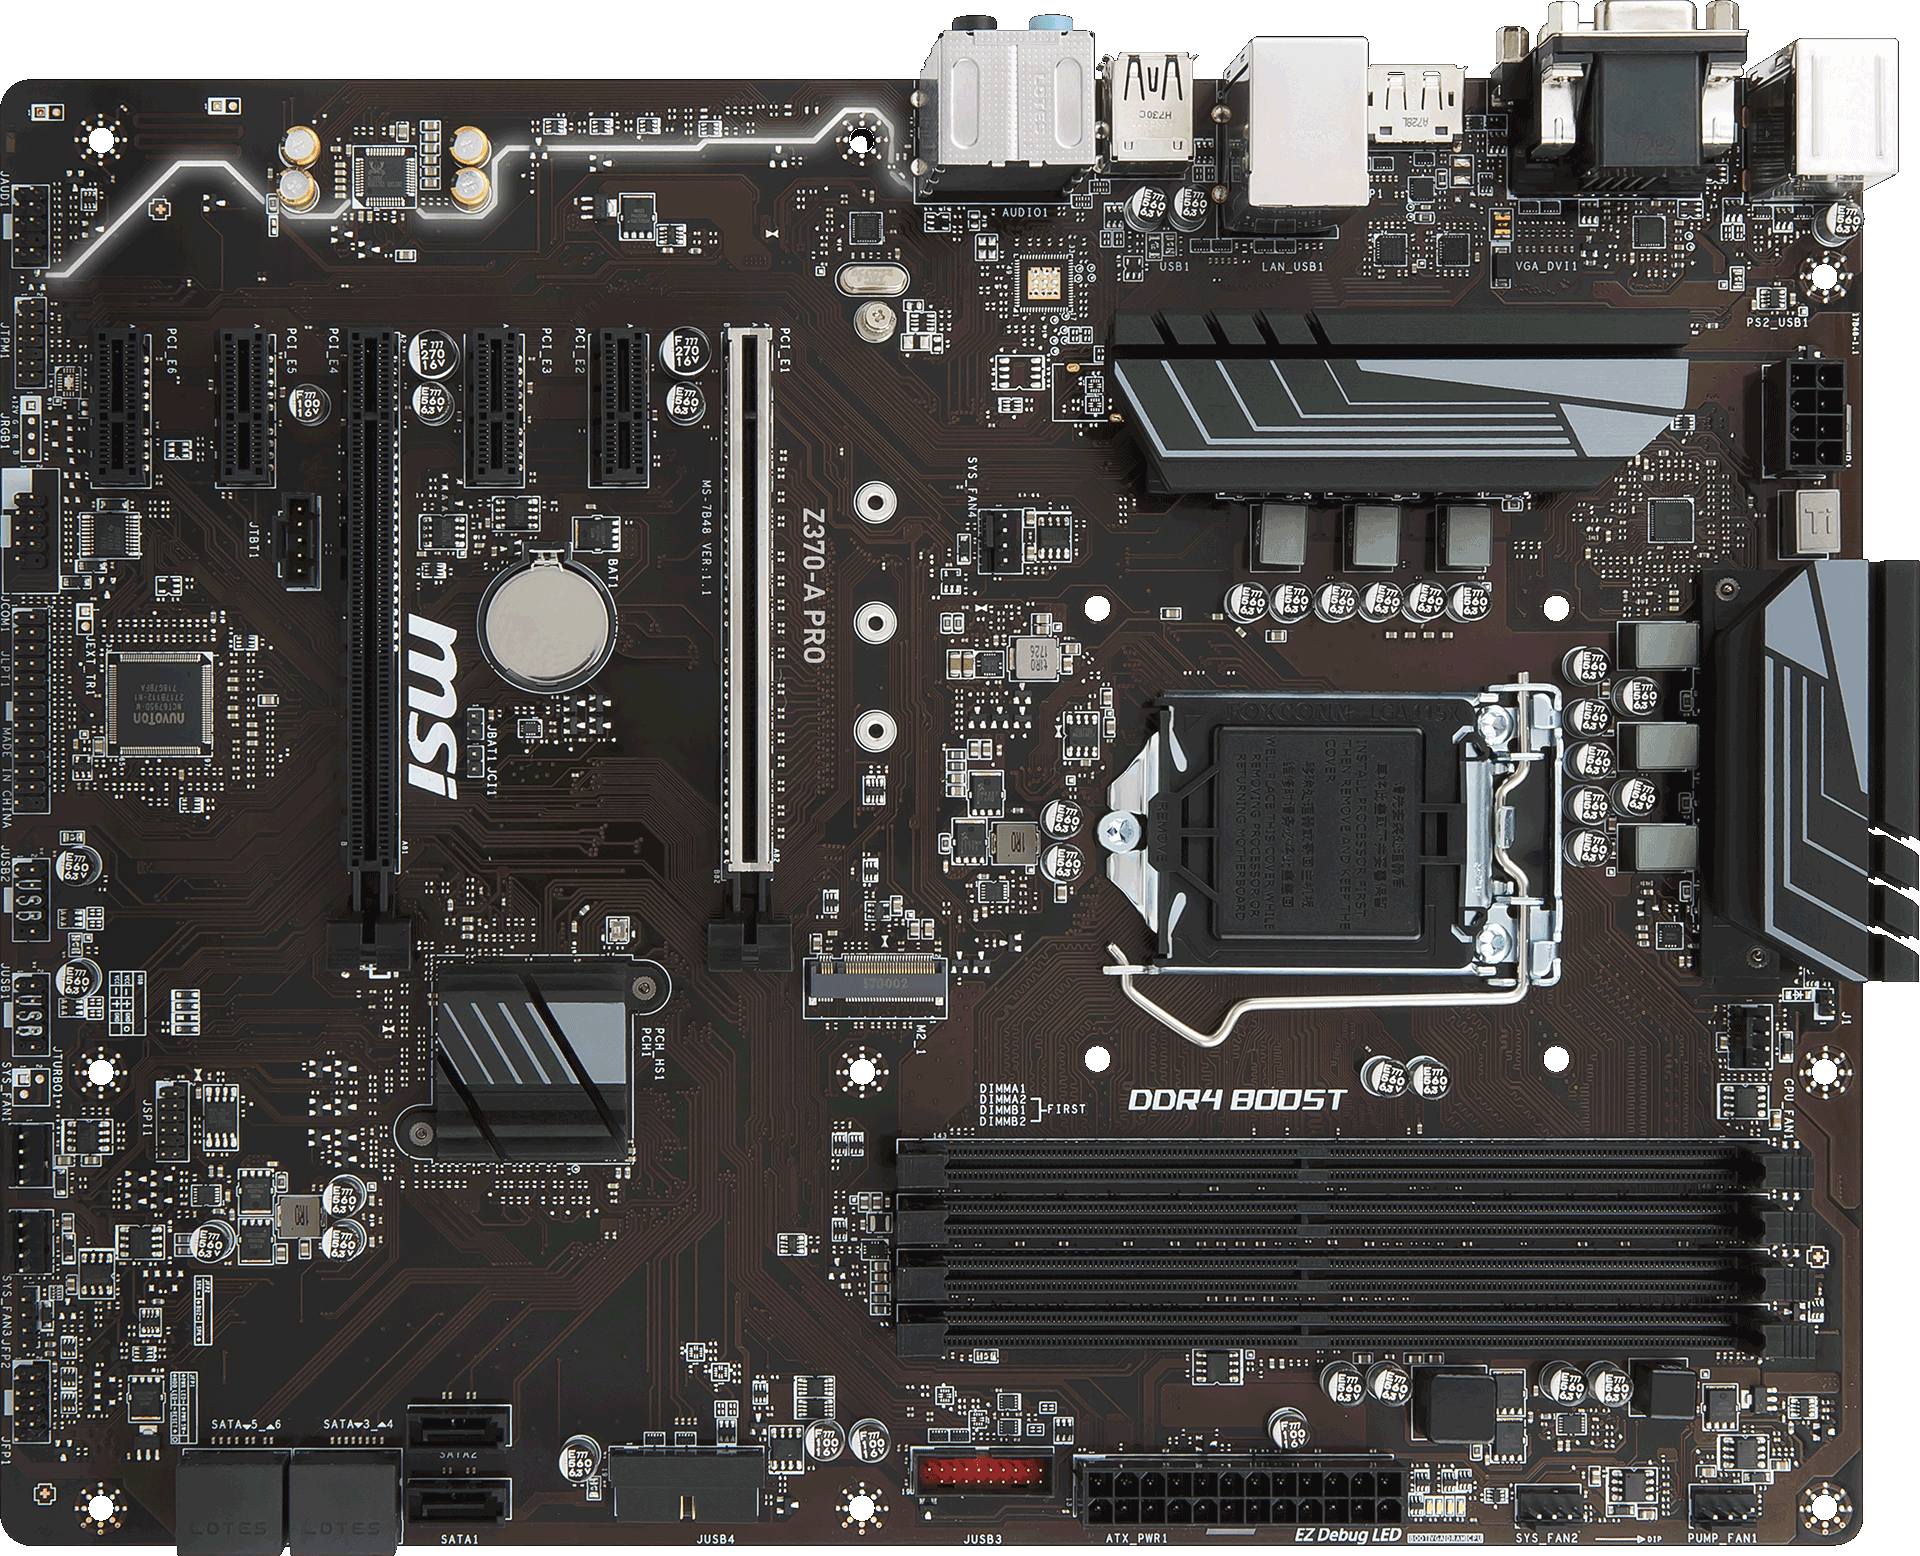 Z370 A Pro Motherboard The World Leader In Design Genie Max Circuit Board Wiring Diagram Tuning